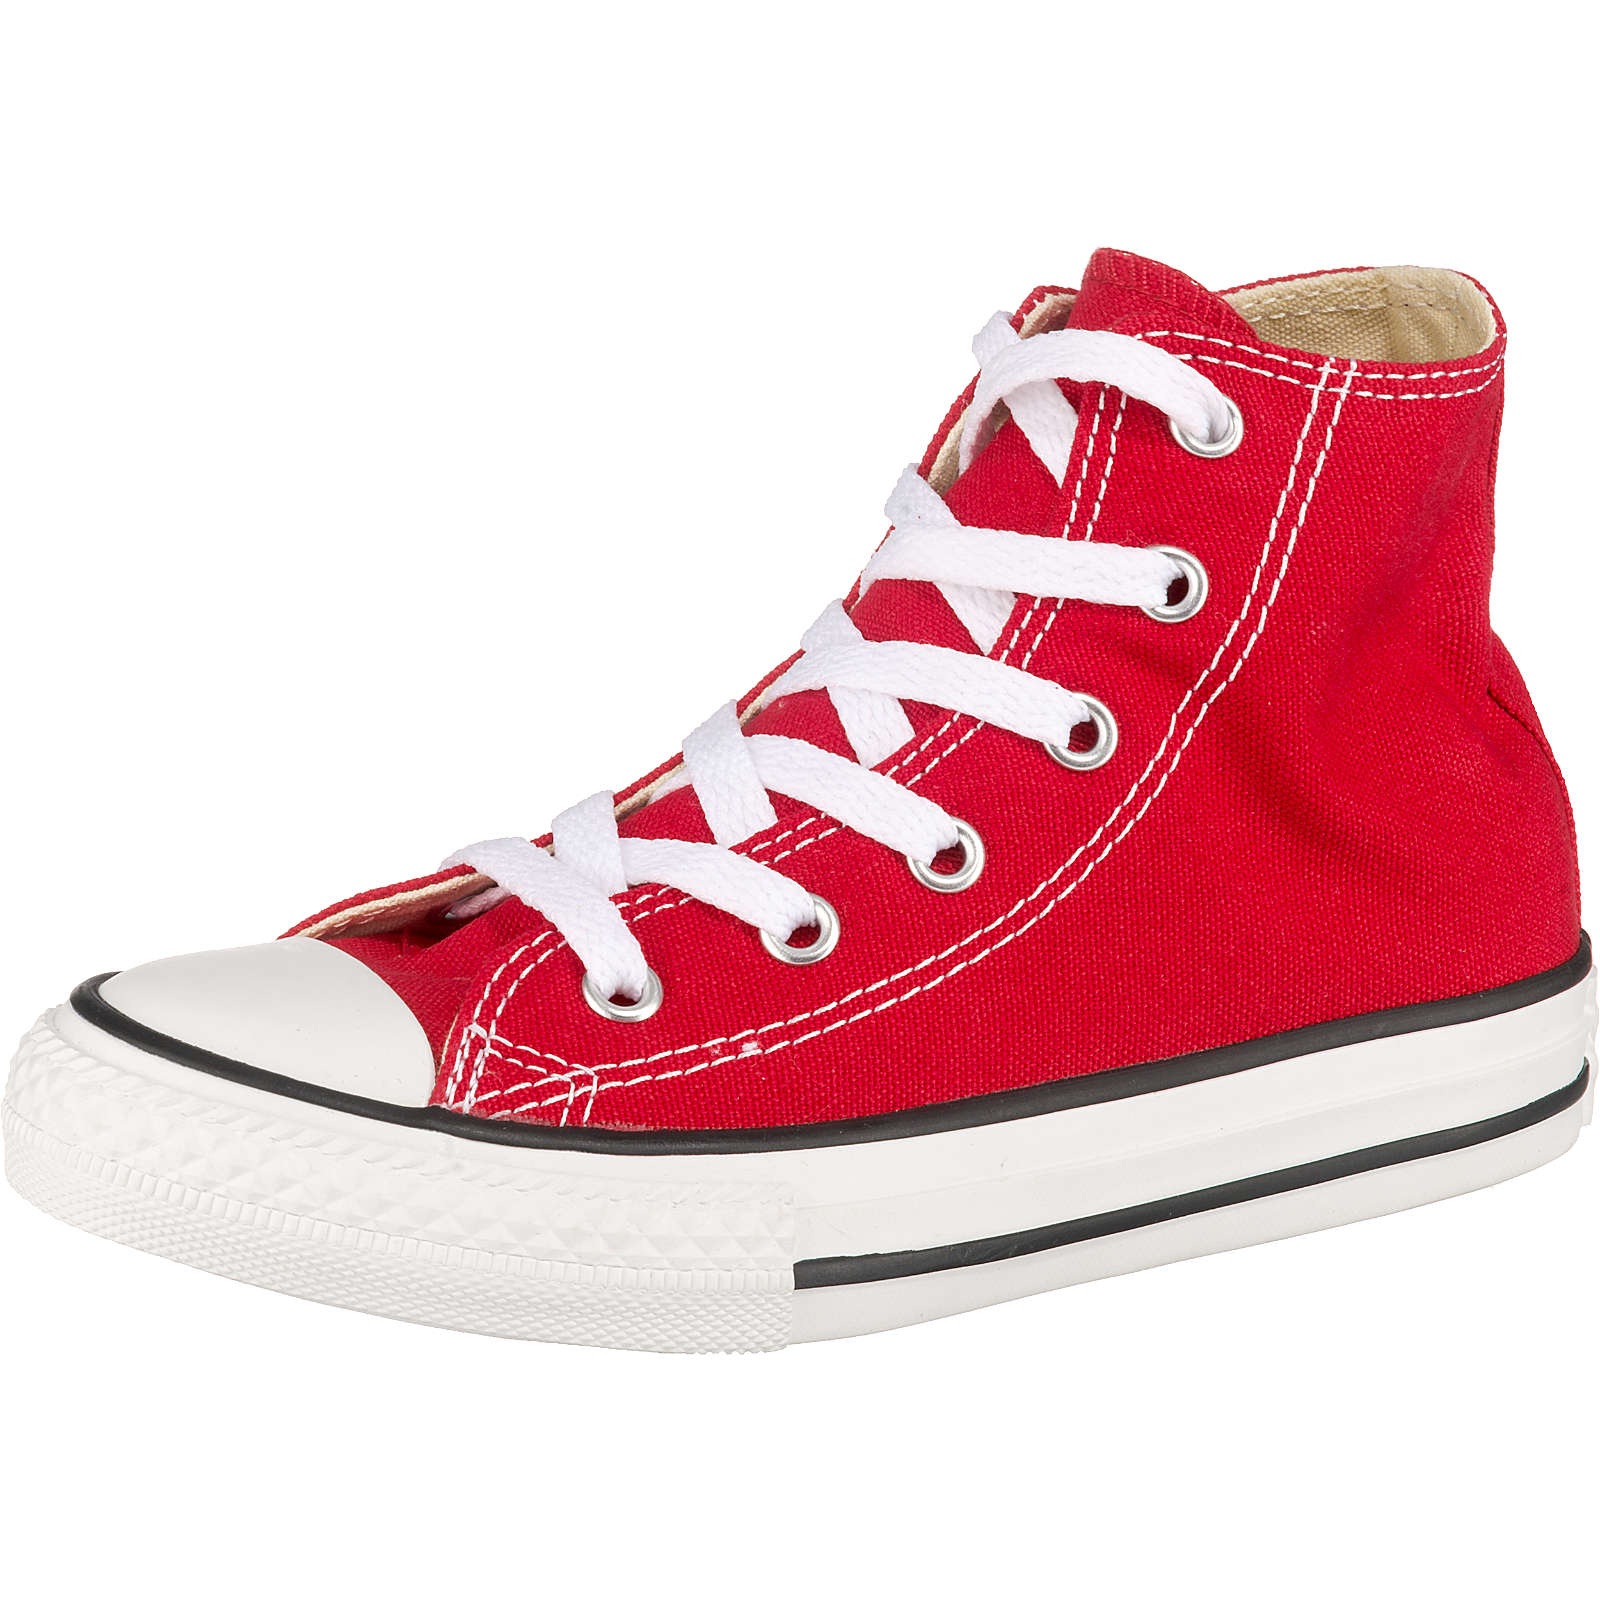 CONVERSE Kinder Sneakers High YTHS C/T ALLSTAR HI RED rot Gr. 30